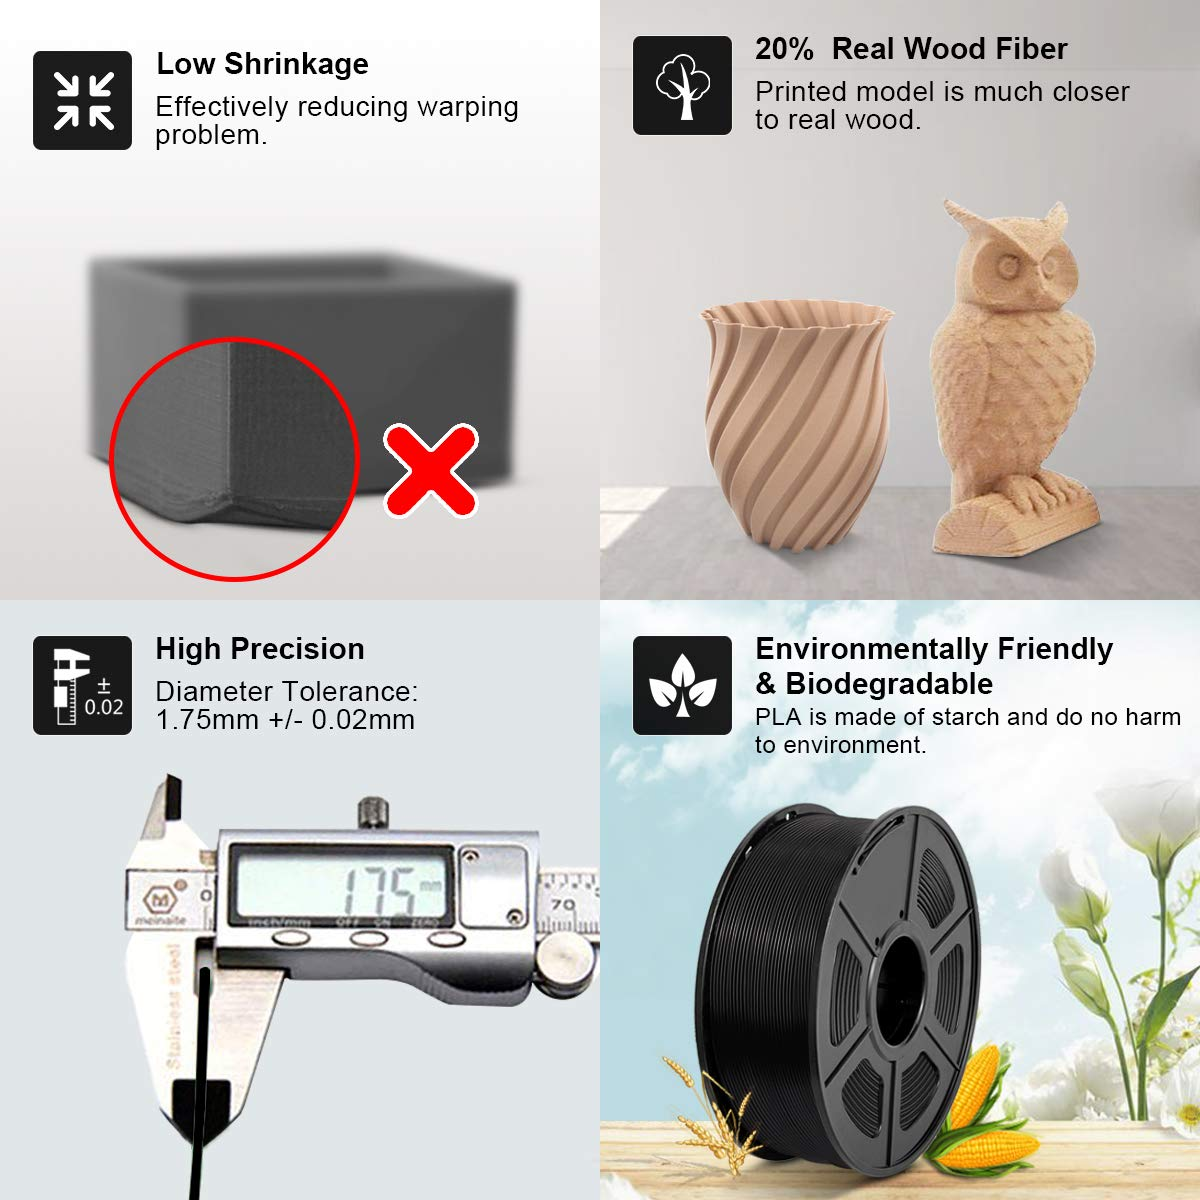 PLA Carbon Fiber Filament 1.75mm 2.2 lb Extremely Rigid 3D Printer Filament Carbon Fiber 3D Printer Filament 1KG Black